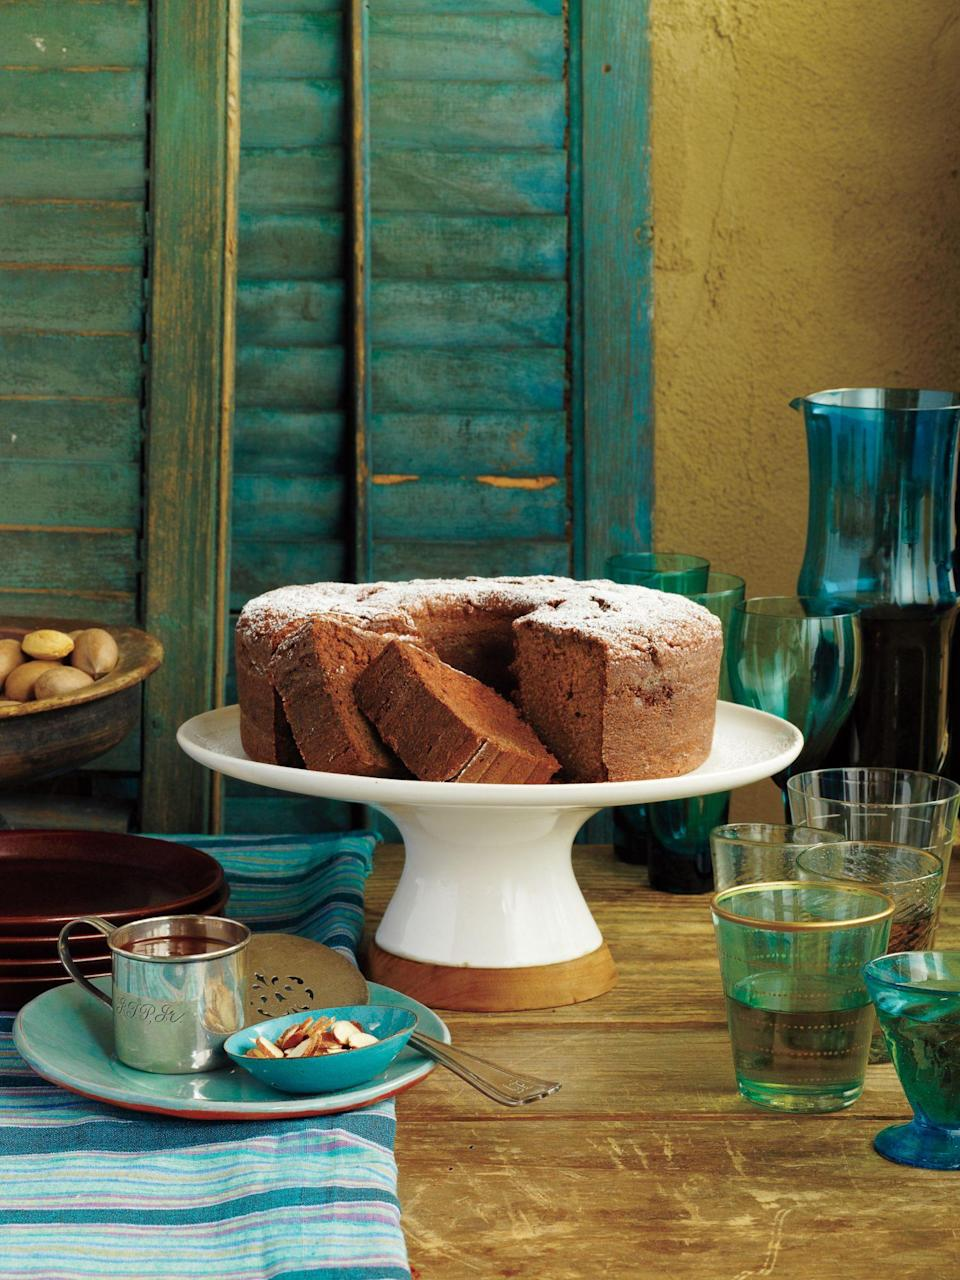 """<p><strong>Recipe: <a href=""""https://www.southernliving.com/syndication/mexican-chocolate-pound-cake"""" rel=""""nofollow noopener"""" target=""""_blank"""" data-ylk=""""slk:Mexican Chocolate Pound Cake"""" class=""""link rapid-noclick-resp"""">Mexican Chocolate Pound Cake</a></strong></p> <p>This spiced-up chocolate pound cake is ideal for chilly months. A dusting of powdered sugar and a topping of chocolate sauce make for beautiful presentation.</p>"""